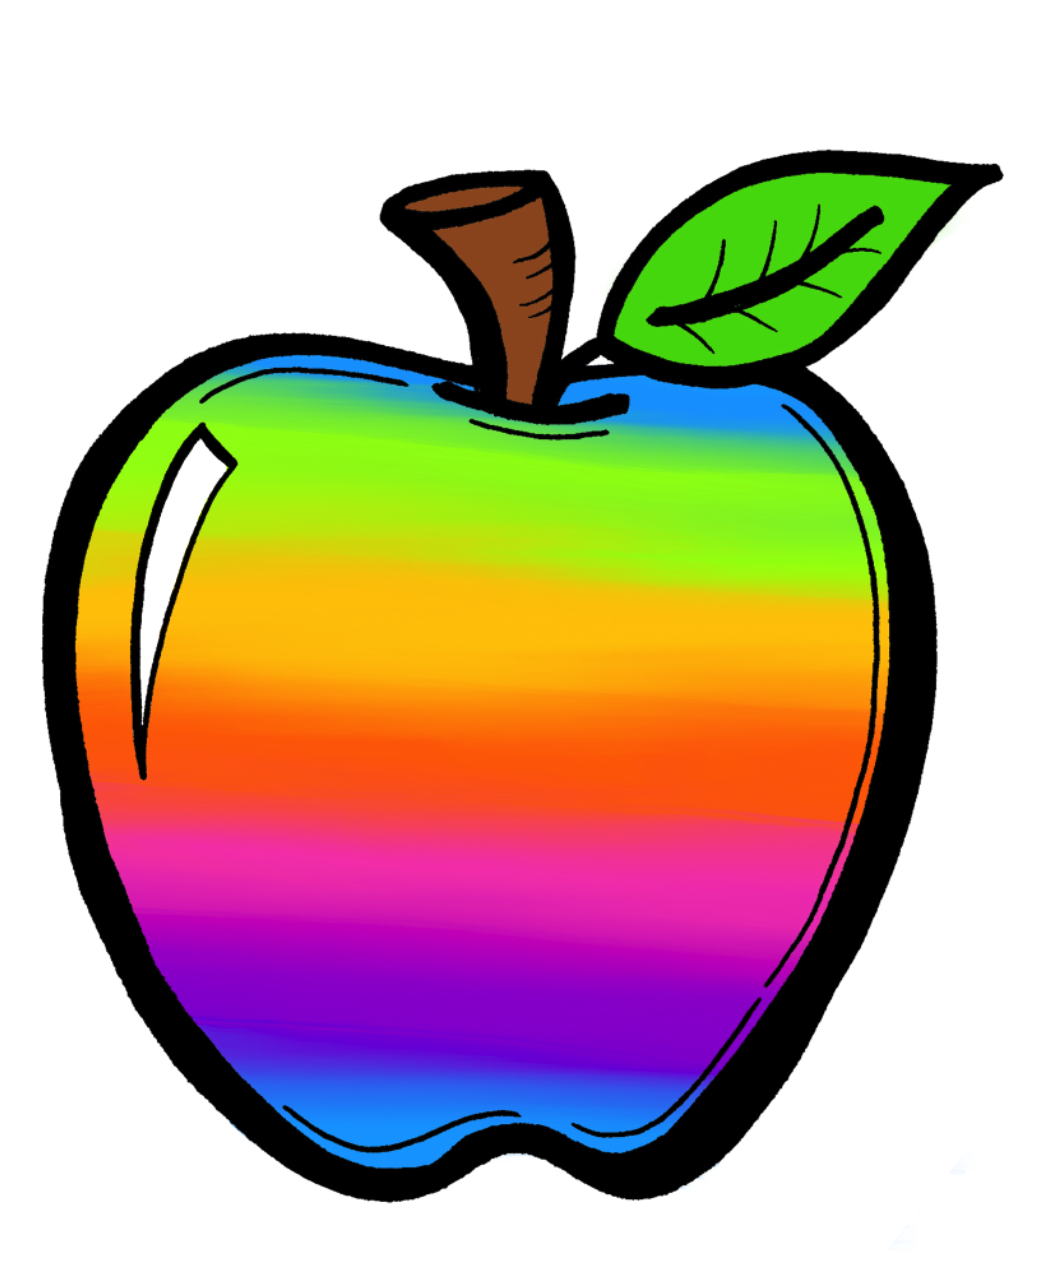 Colouful clipart apple #6